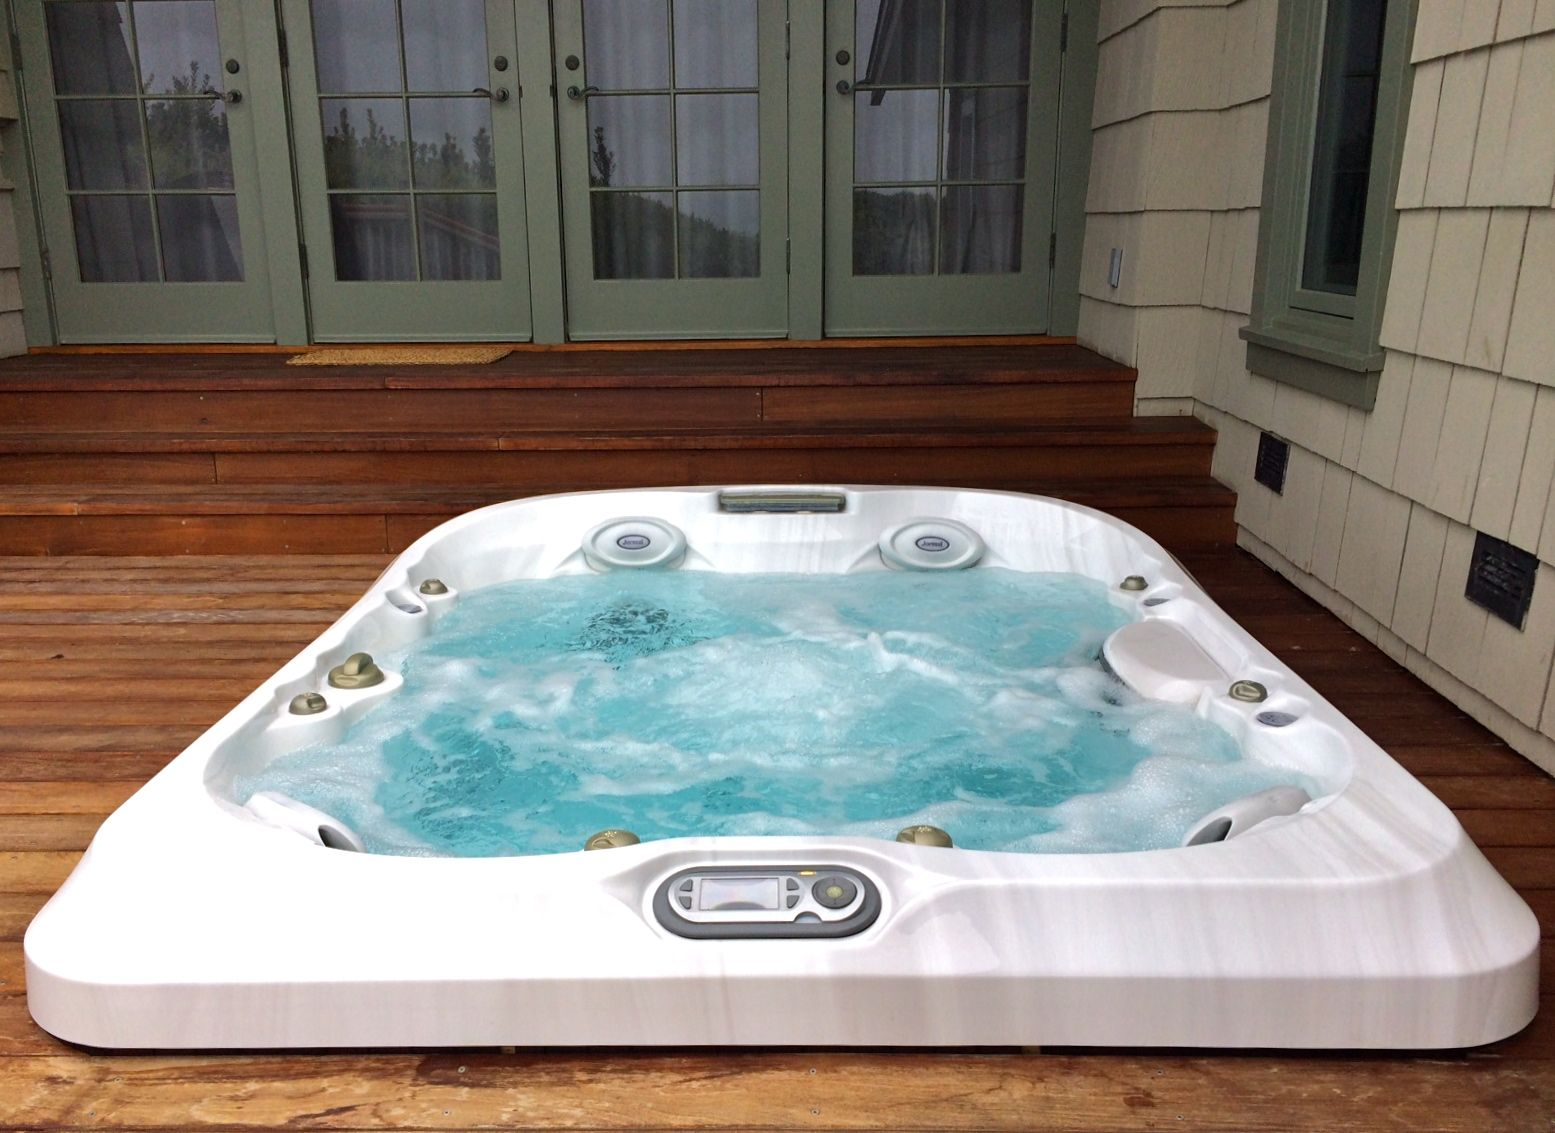 Jacuzzi brand spa set in deck. www.gordonandgrant.com | Backyard ...